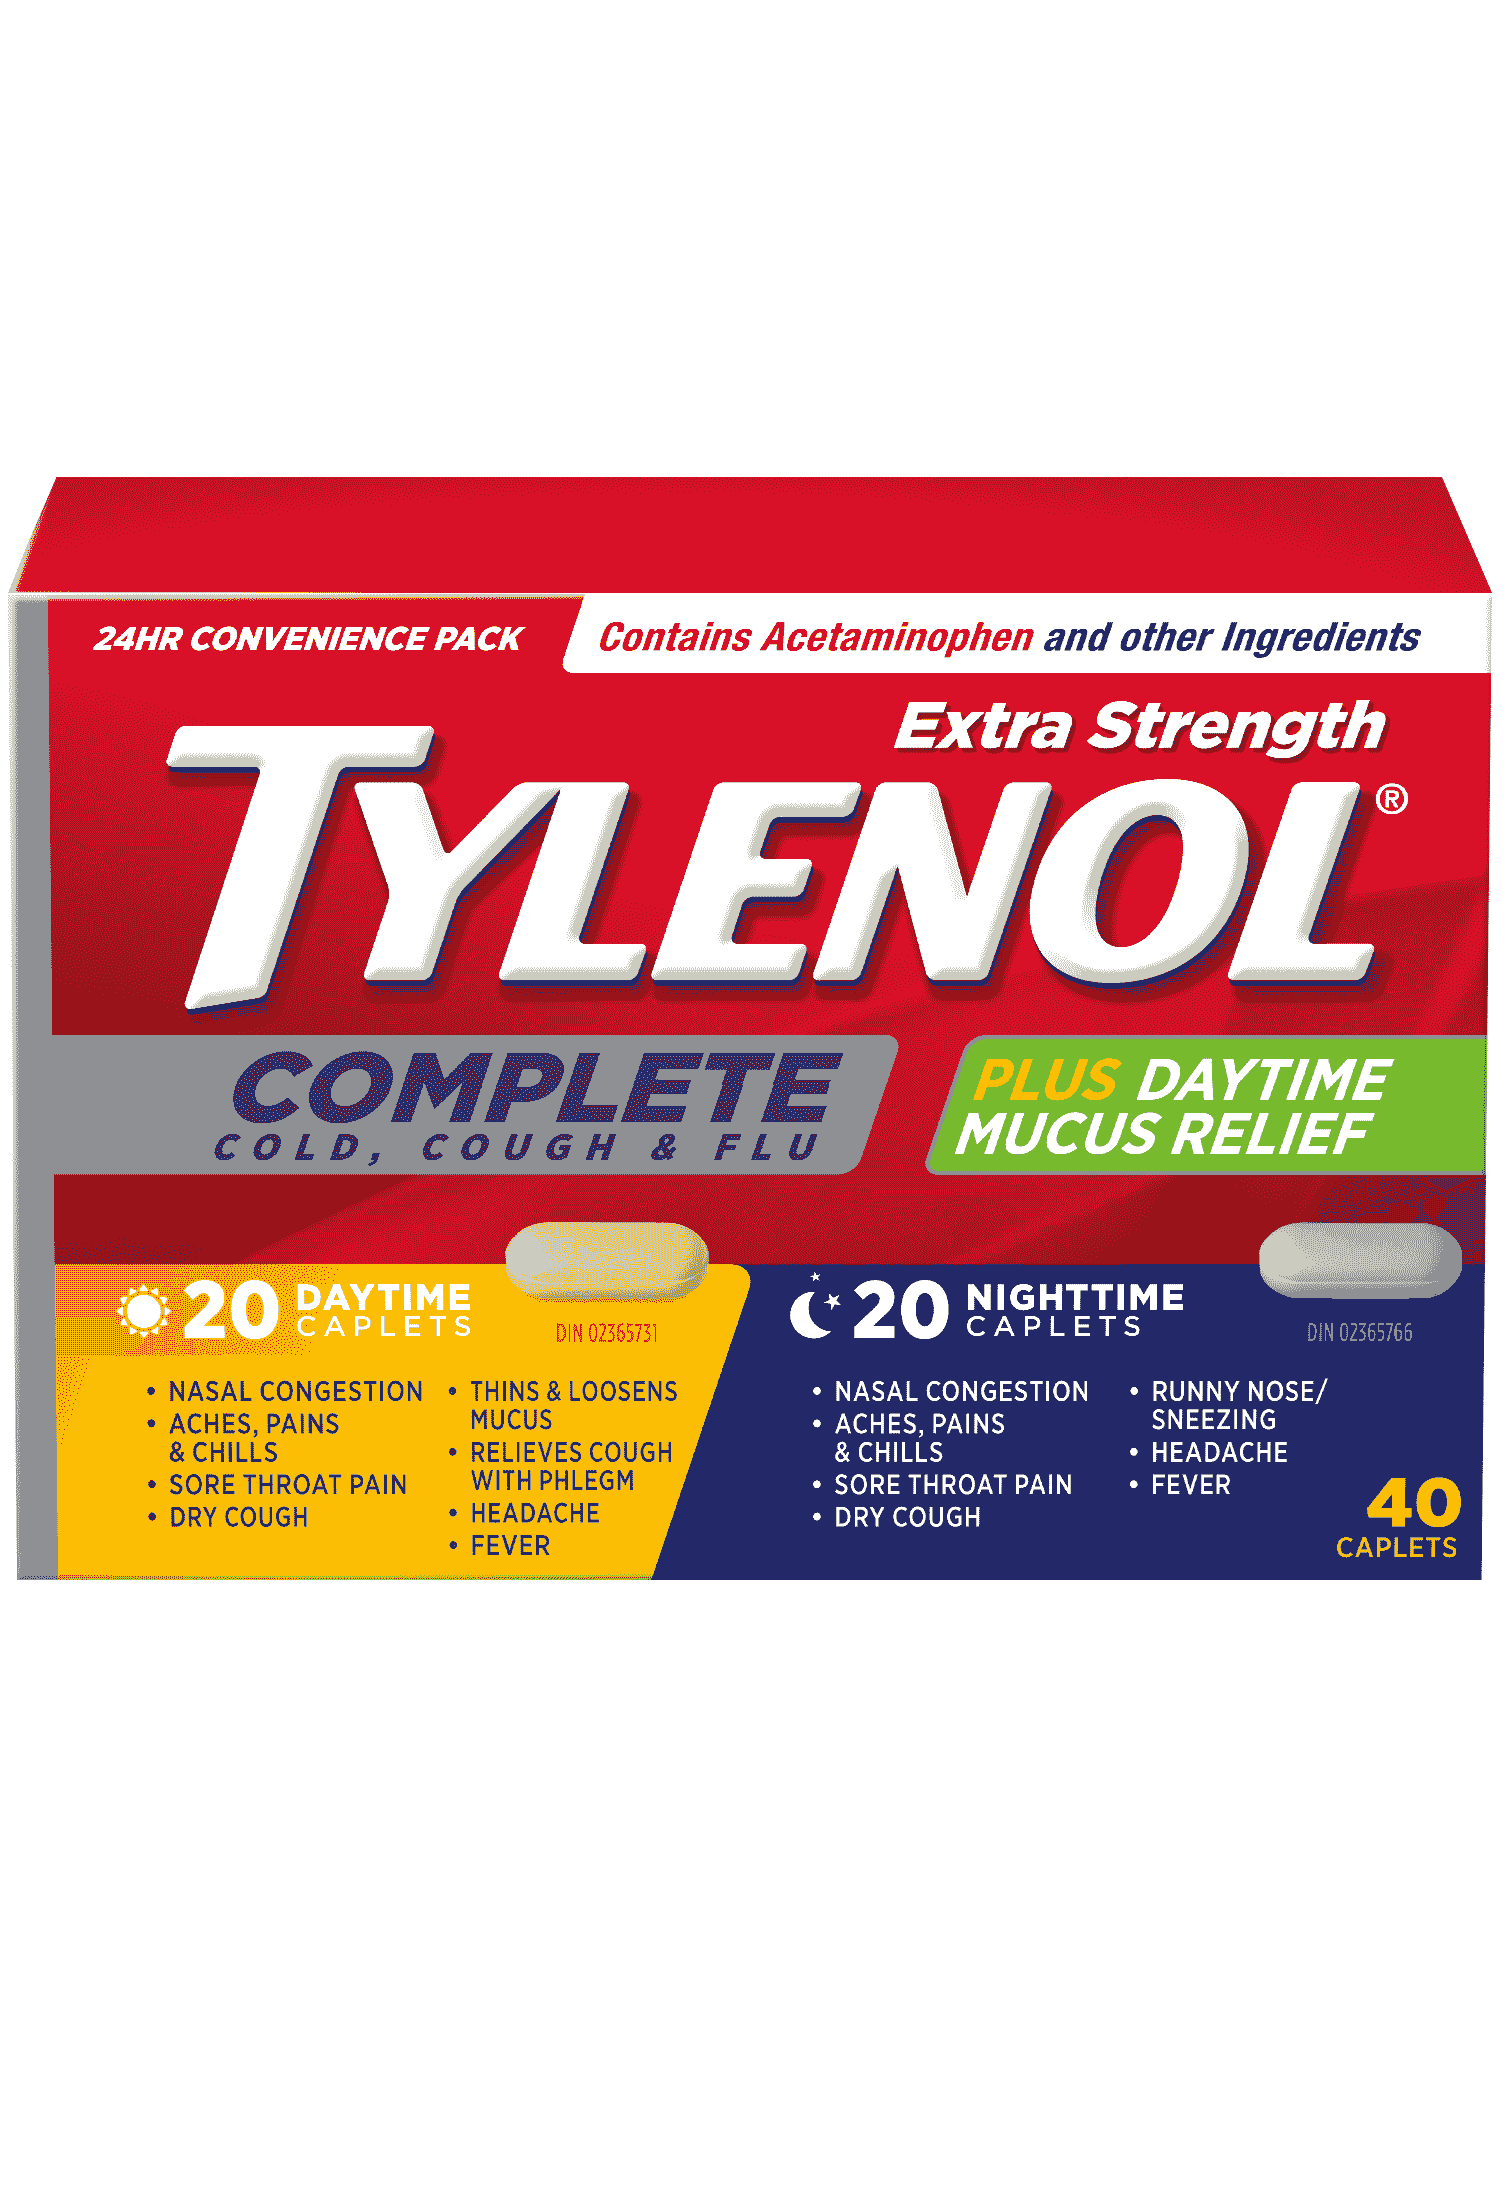 TYLENOL® Complete Cold, Cough & Flu